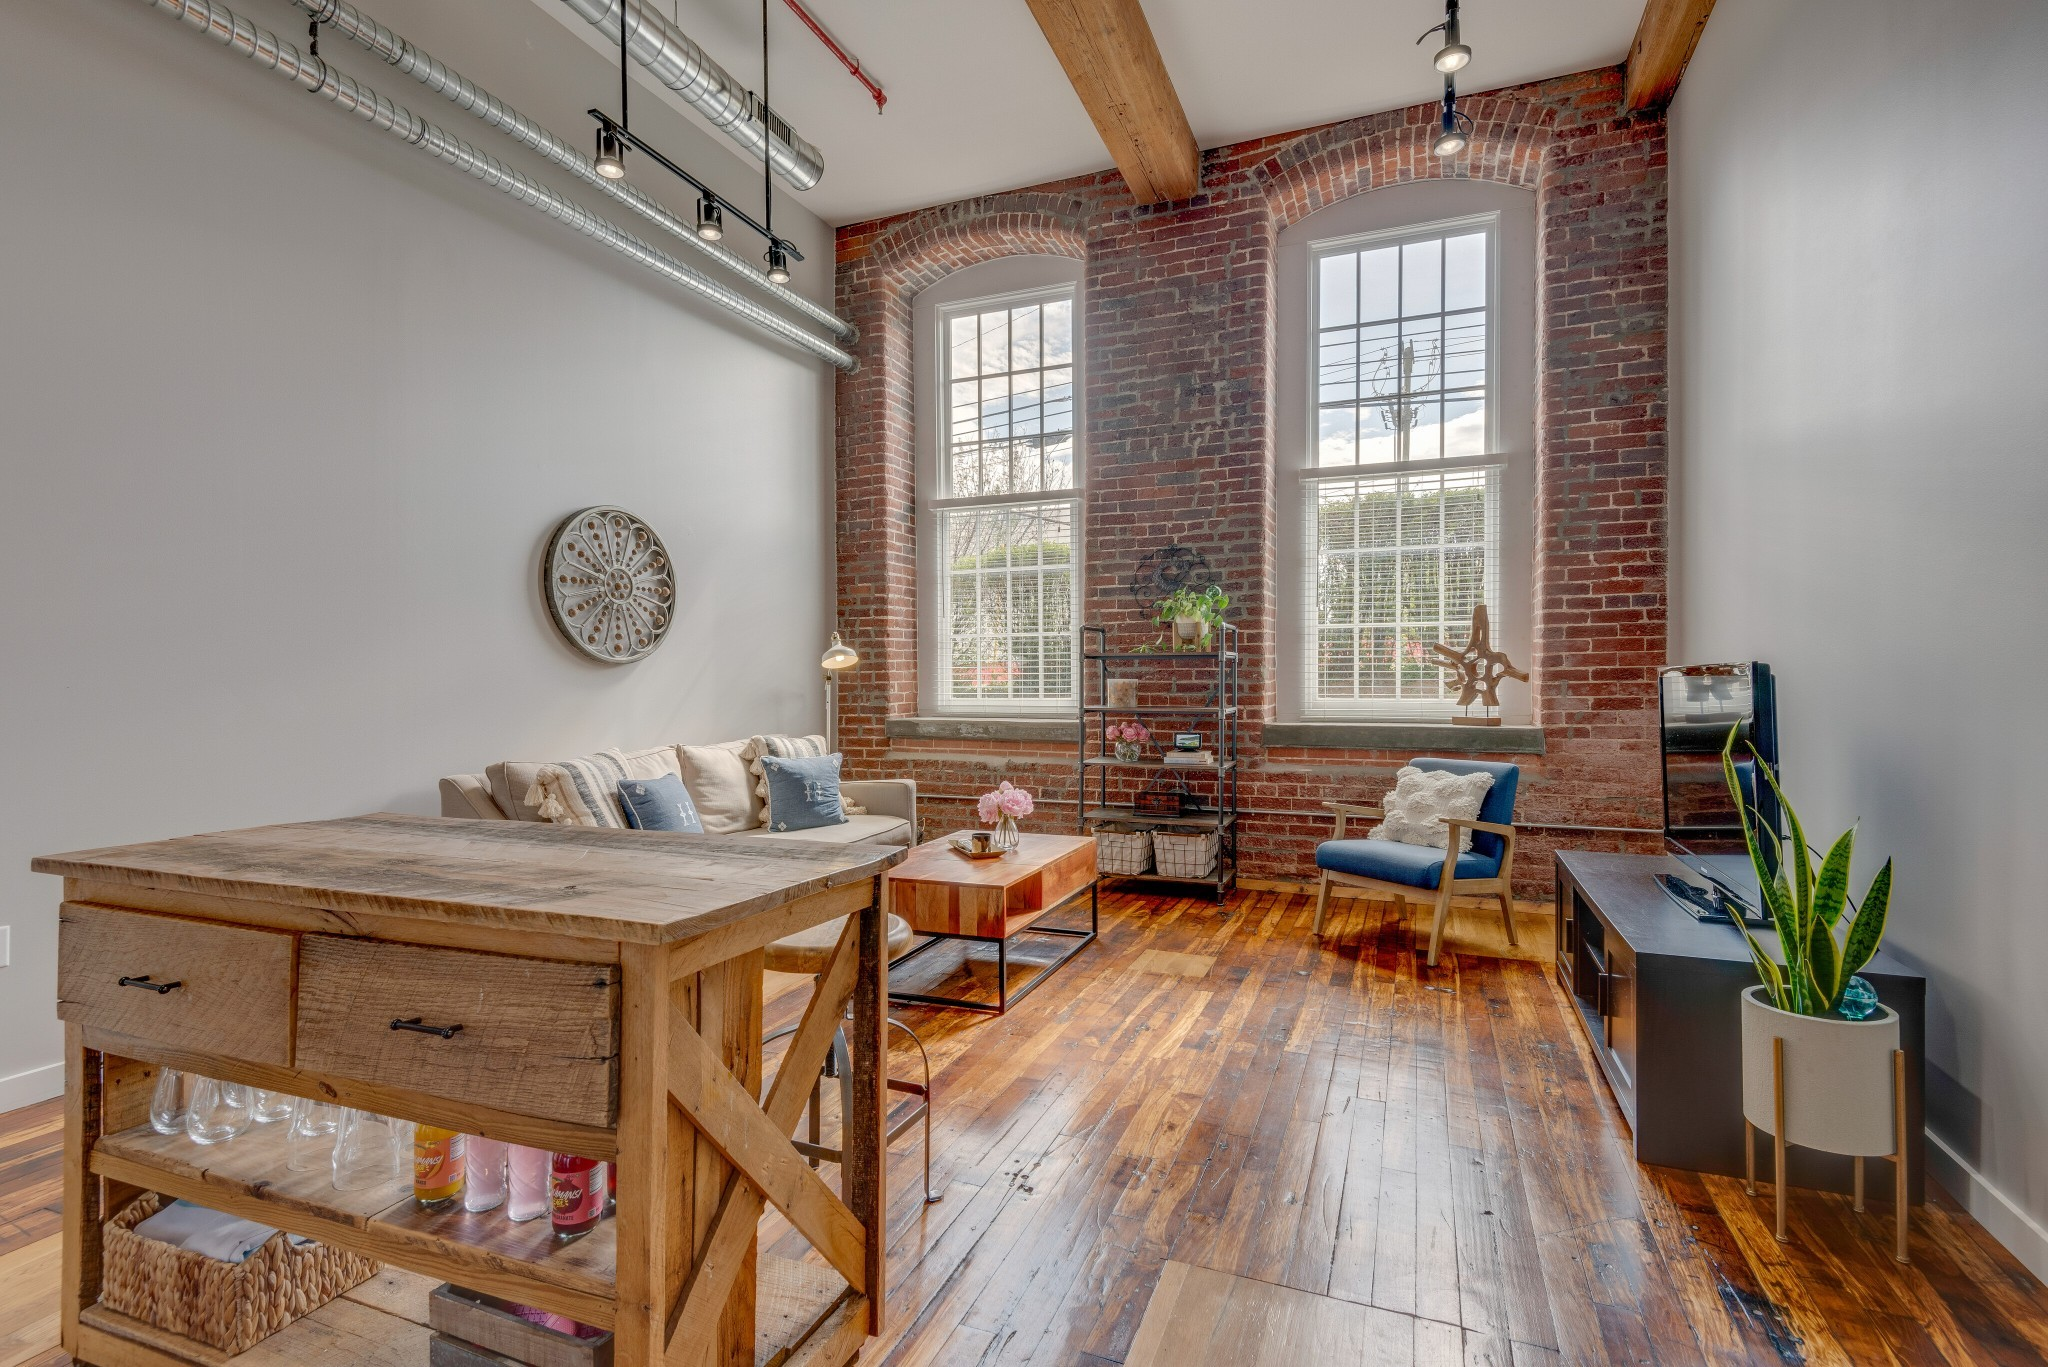 Updated + stunning residence in Historic Germantown's Werthan Lofts, with convenient proximity to the pool & building entrance. Home features soaring ceilings that maximize the natural light, exposed brick & original hardwoods. Updated bathroom w/ new vanity, updated lighting throughout, custom pantry door, granite countertops, new tile backsplash, & custom wood island. Werthan Lofts has 2 pools, fitness/yoga spaces, + gated parking. The perfect location for restaurants, shopping, entertainment!